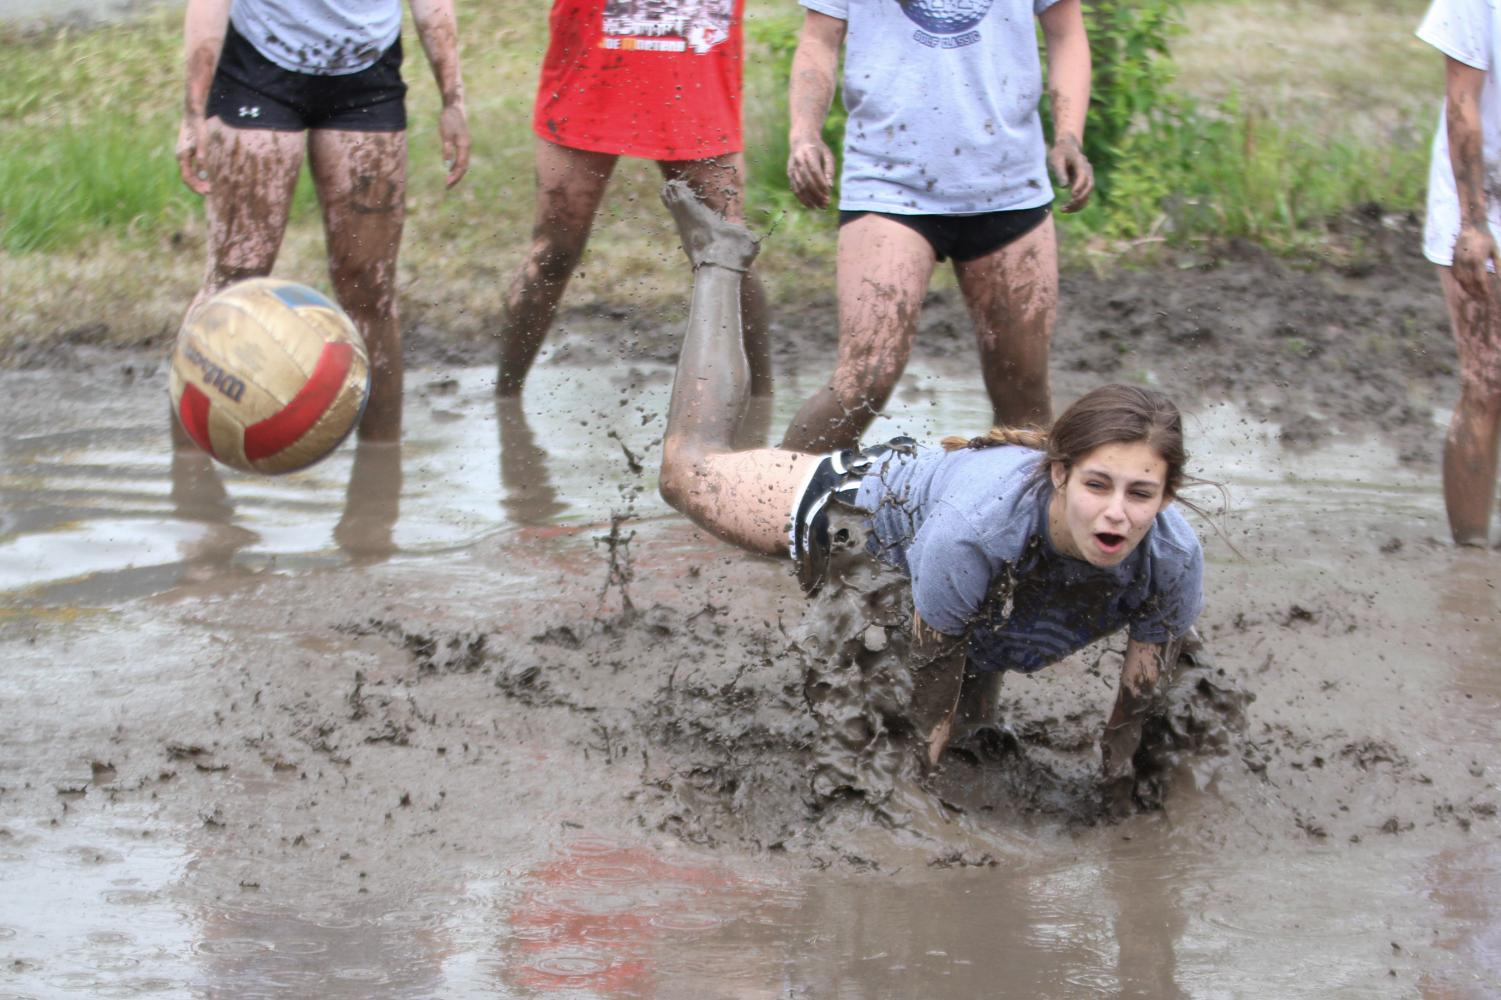 After+trying+to+reach+the+ball%2C+freshman+Lauren+Payne+falls+into+the+mud.